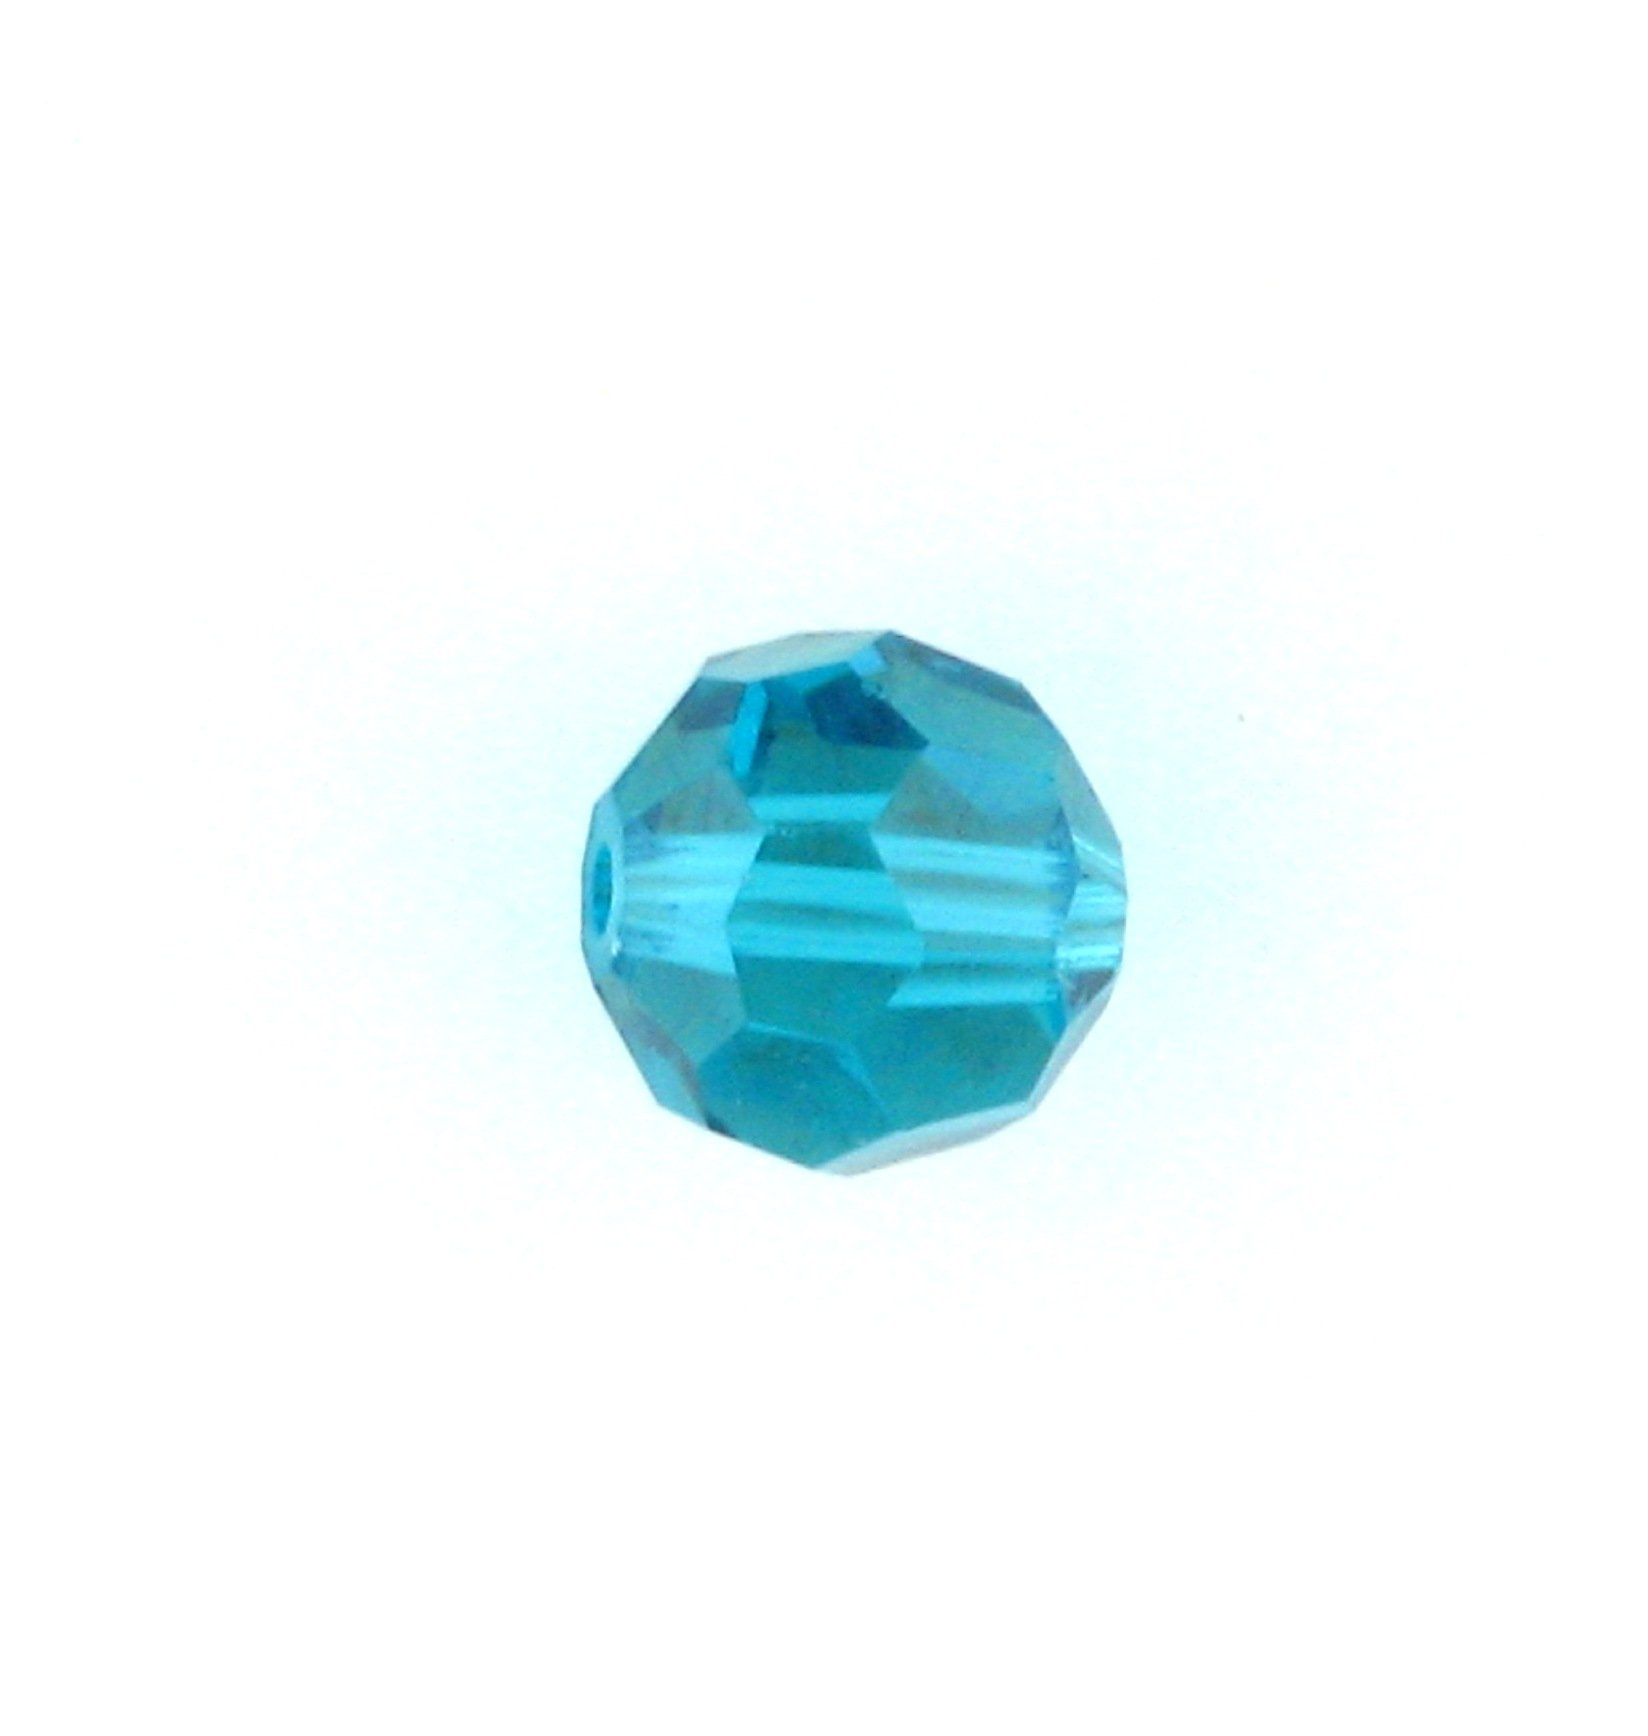 ef327b588 5000 - 4mm Swarovski Round Crystal - Blue Zircon | Crystal Findings